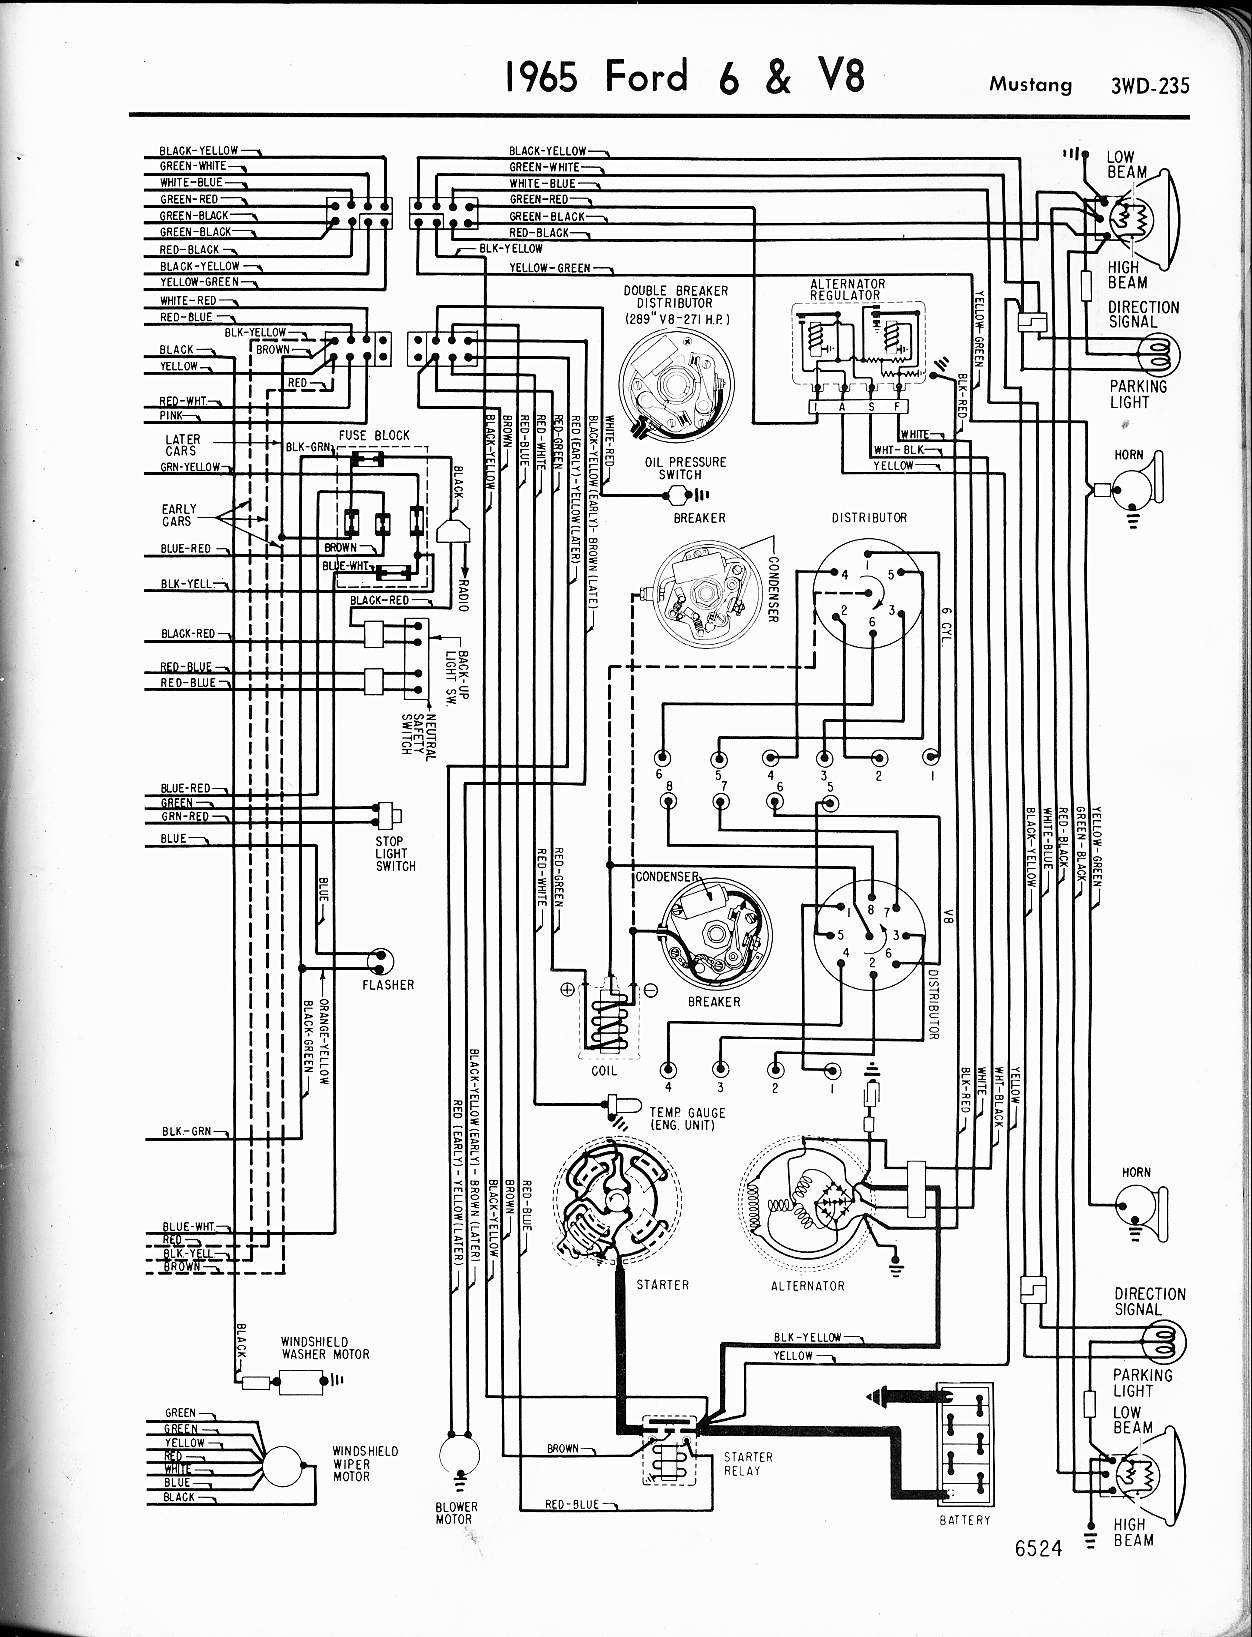 Ford Diagrams 69 Vw Generator Wiring Diagram 65 Mustang 2 Drawing B